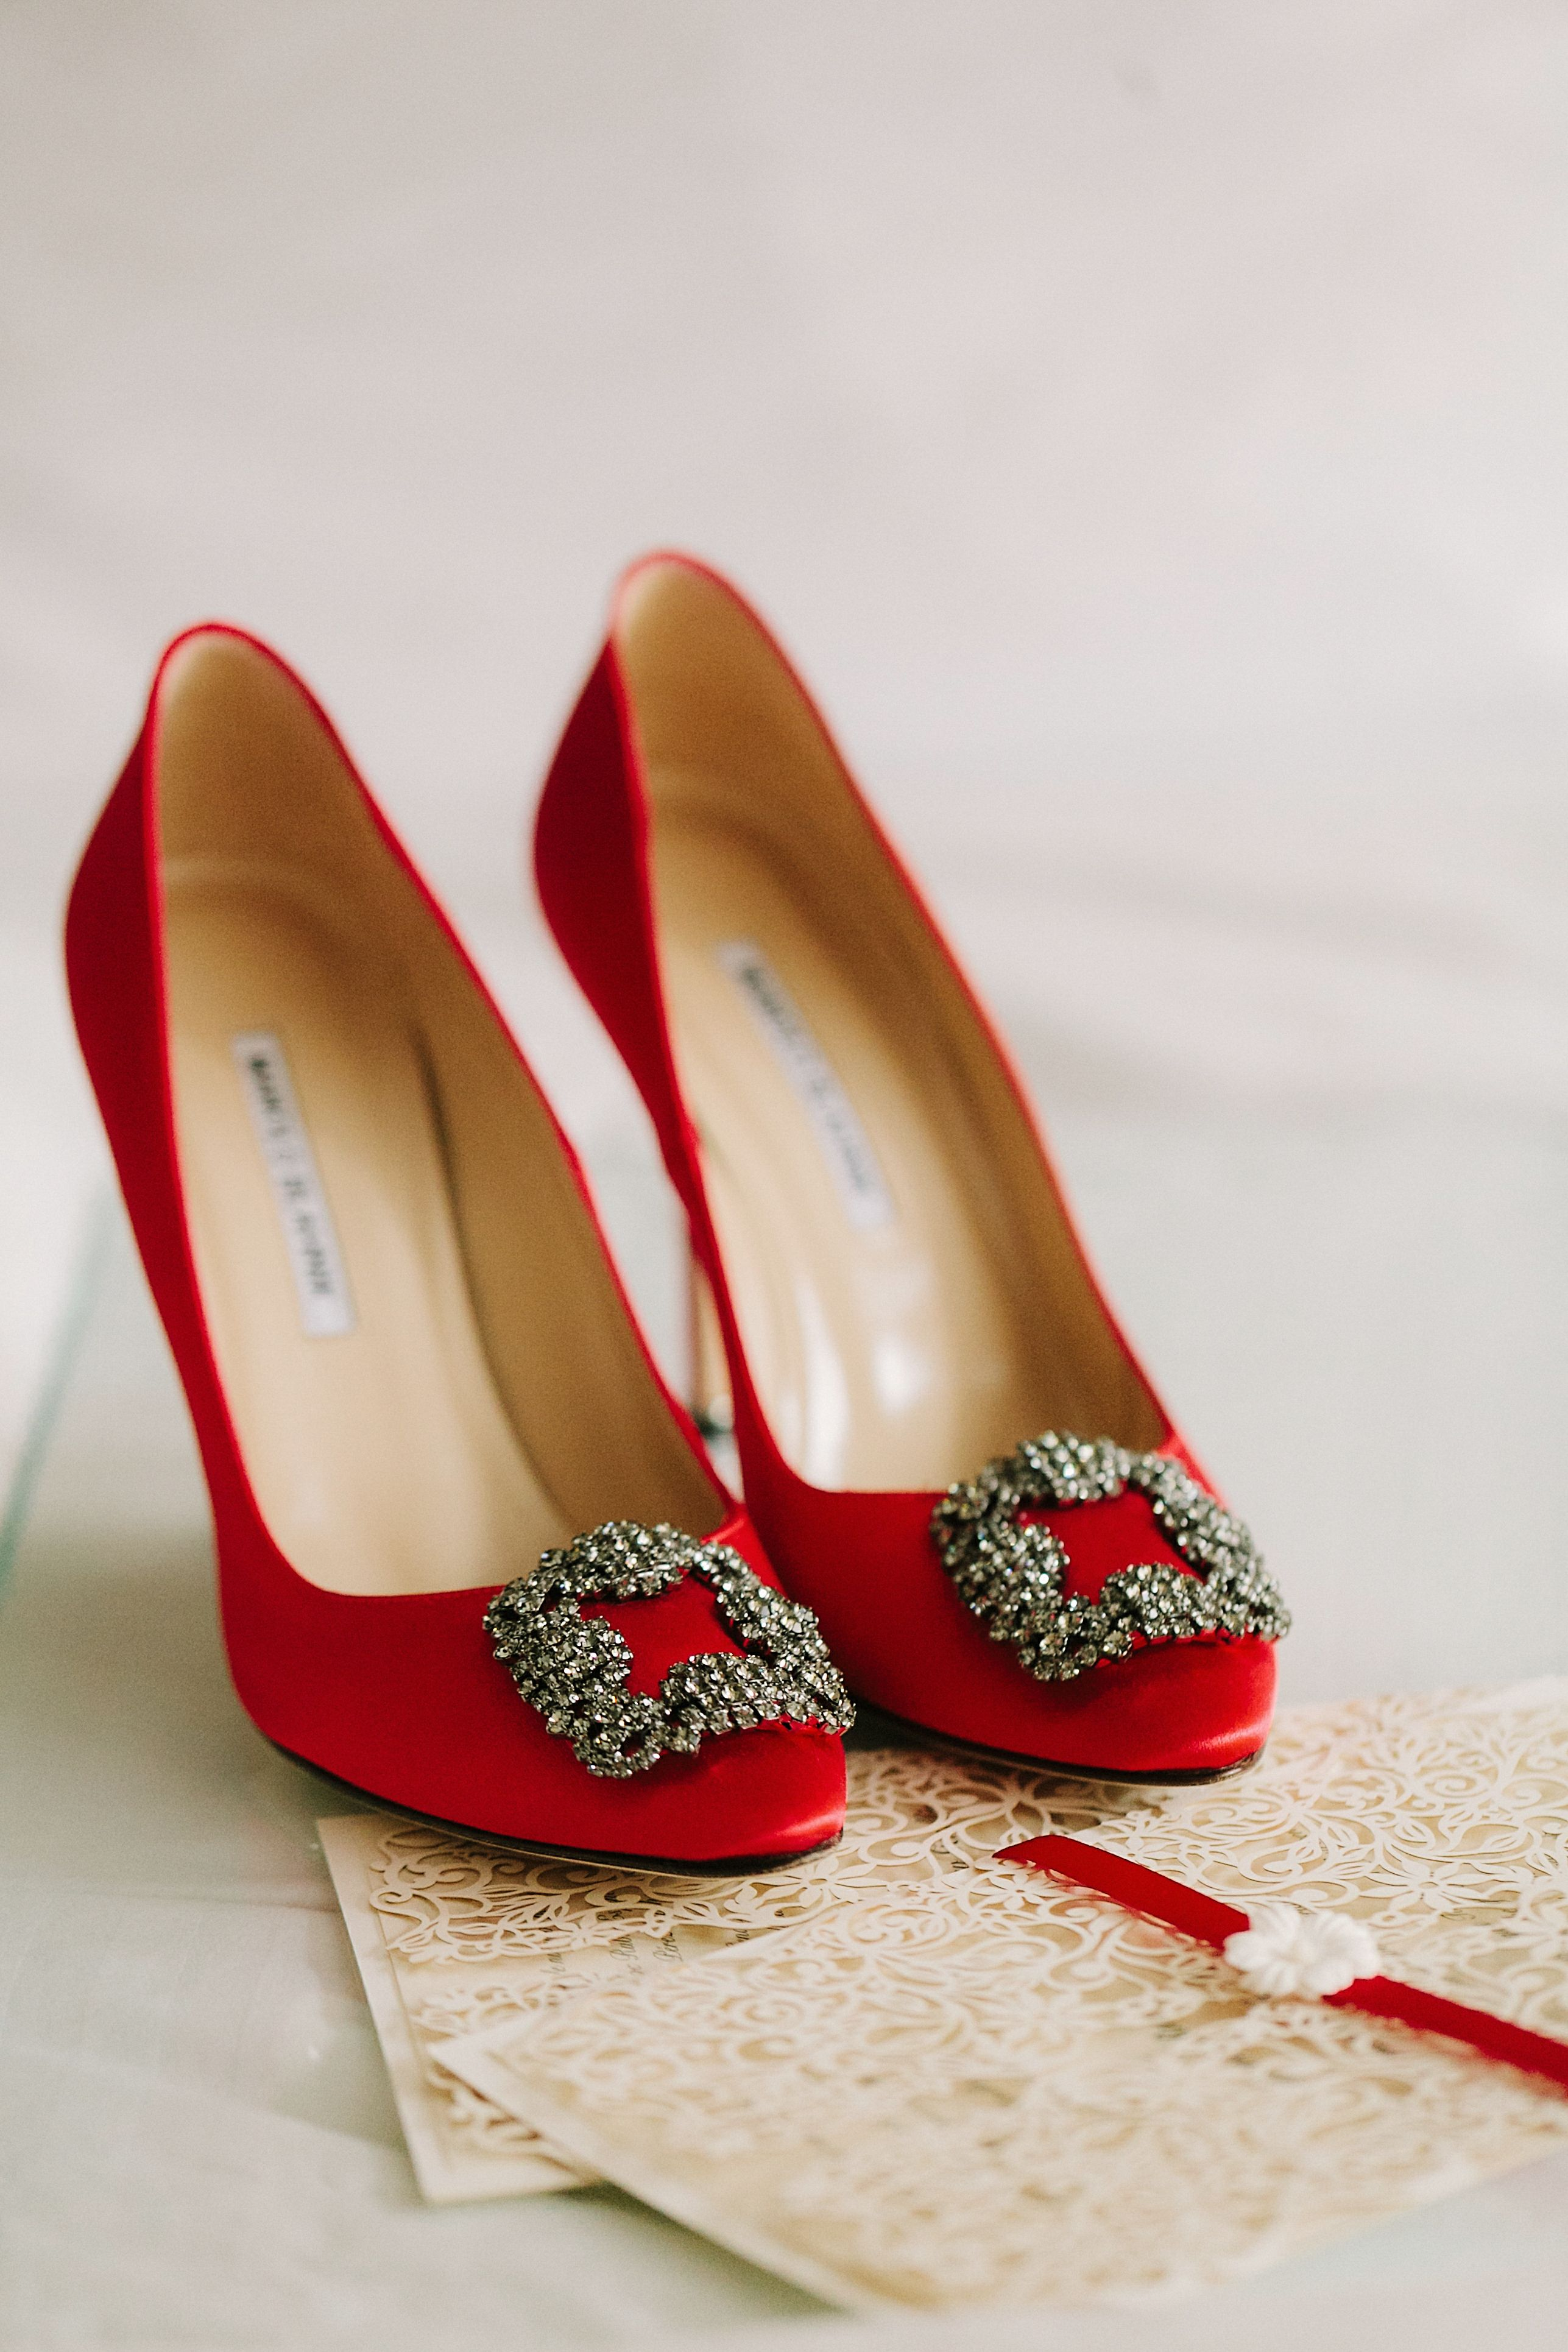 Manolo blanik, Red wedding shoes